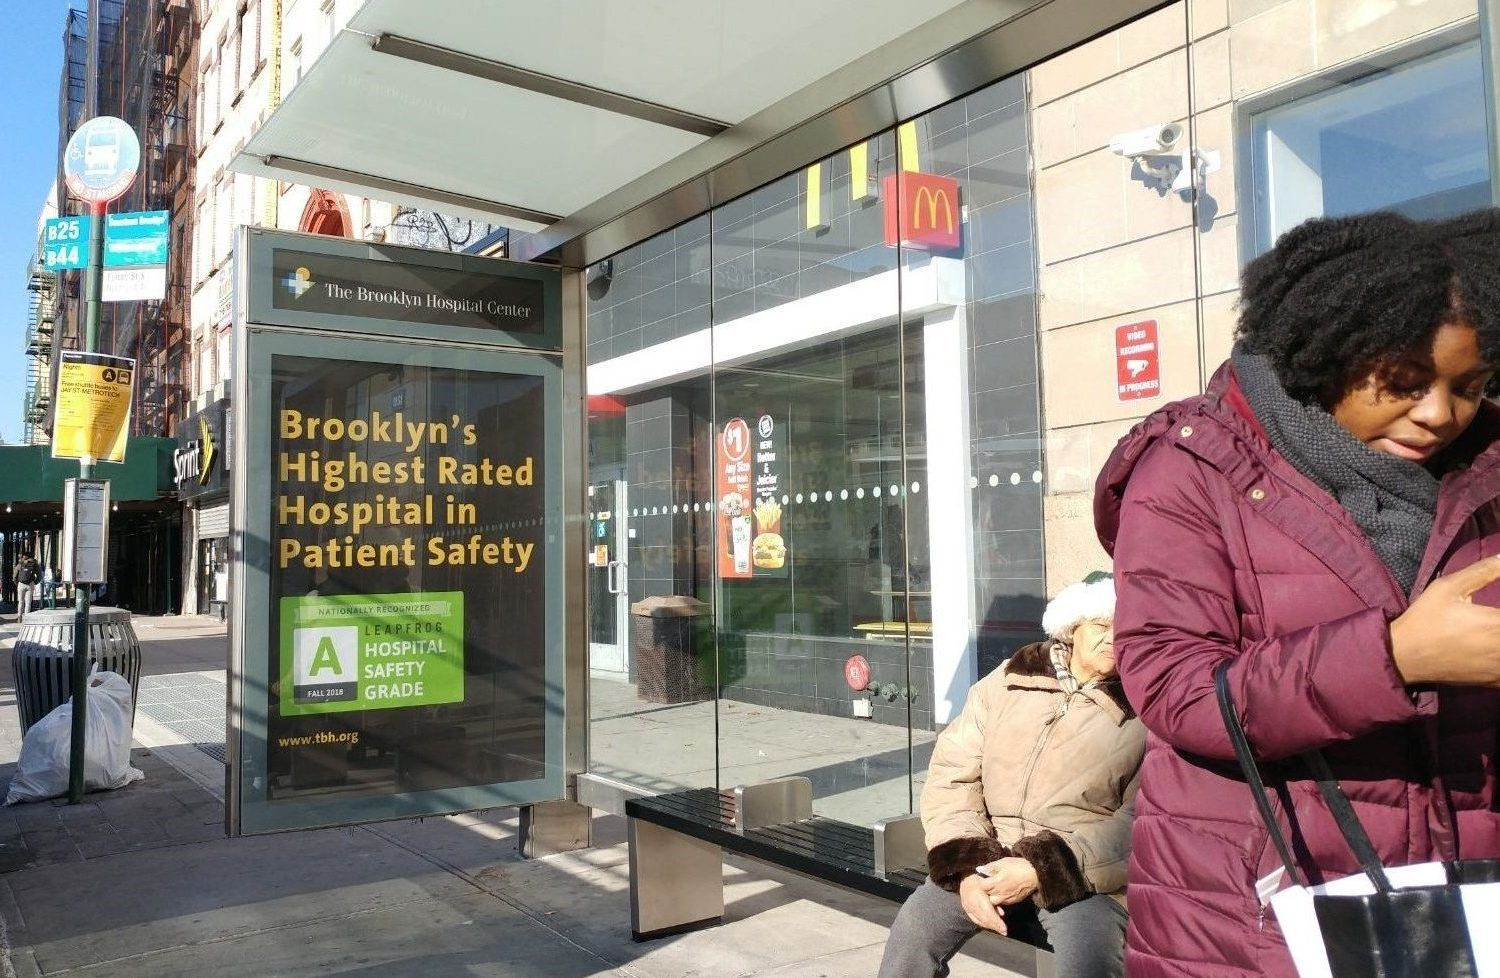 The Brooklyn Hospital Center Bus Shelter Advertising Campaign